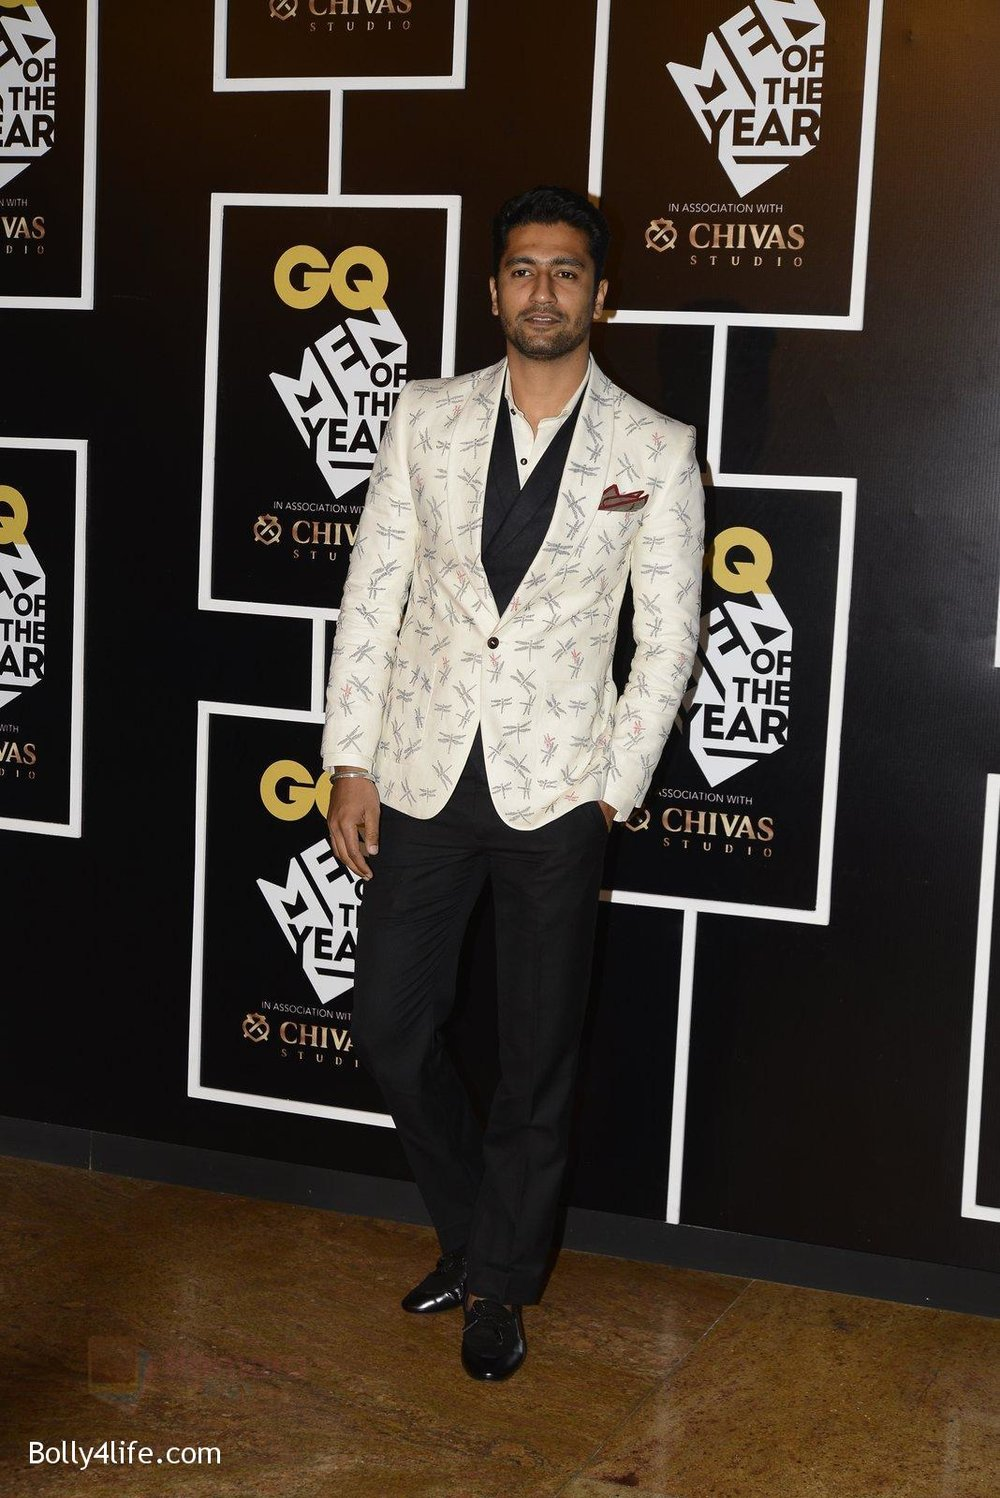 Vicky-Kaushal-at-GQ-MEN-OF-THE-YEAR-on-27th-Sept-2016-785.jpg